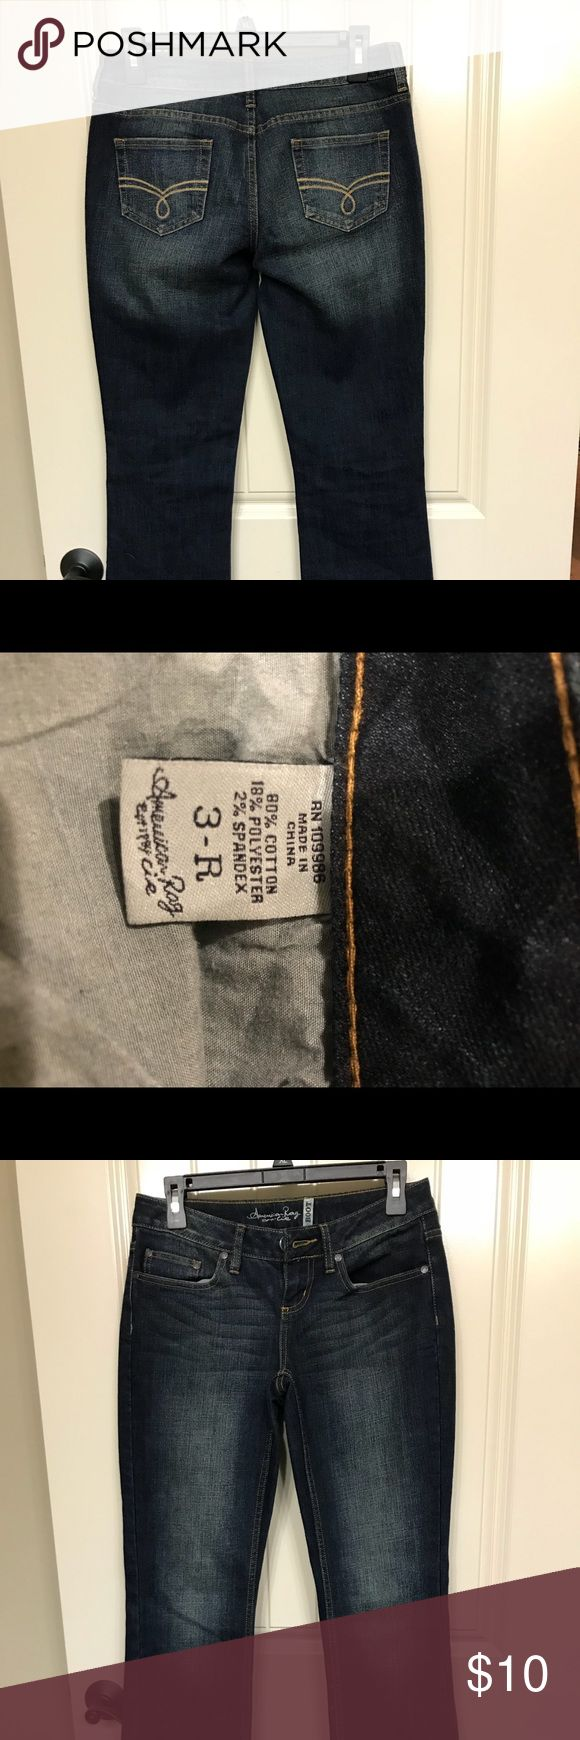 American Rag jeans Excellent condition. Worn a few times. Size 3 boot cut American Rag Jeans Boot Cut